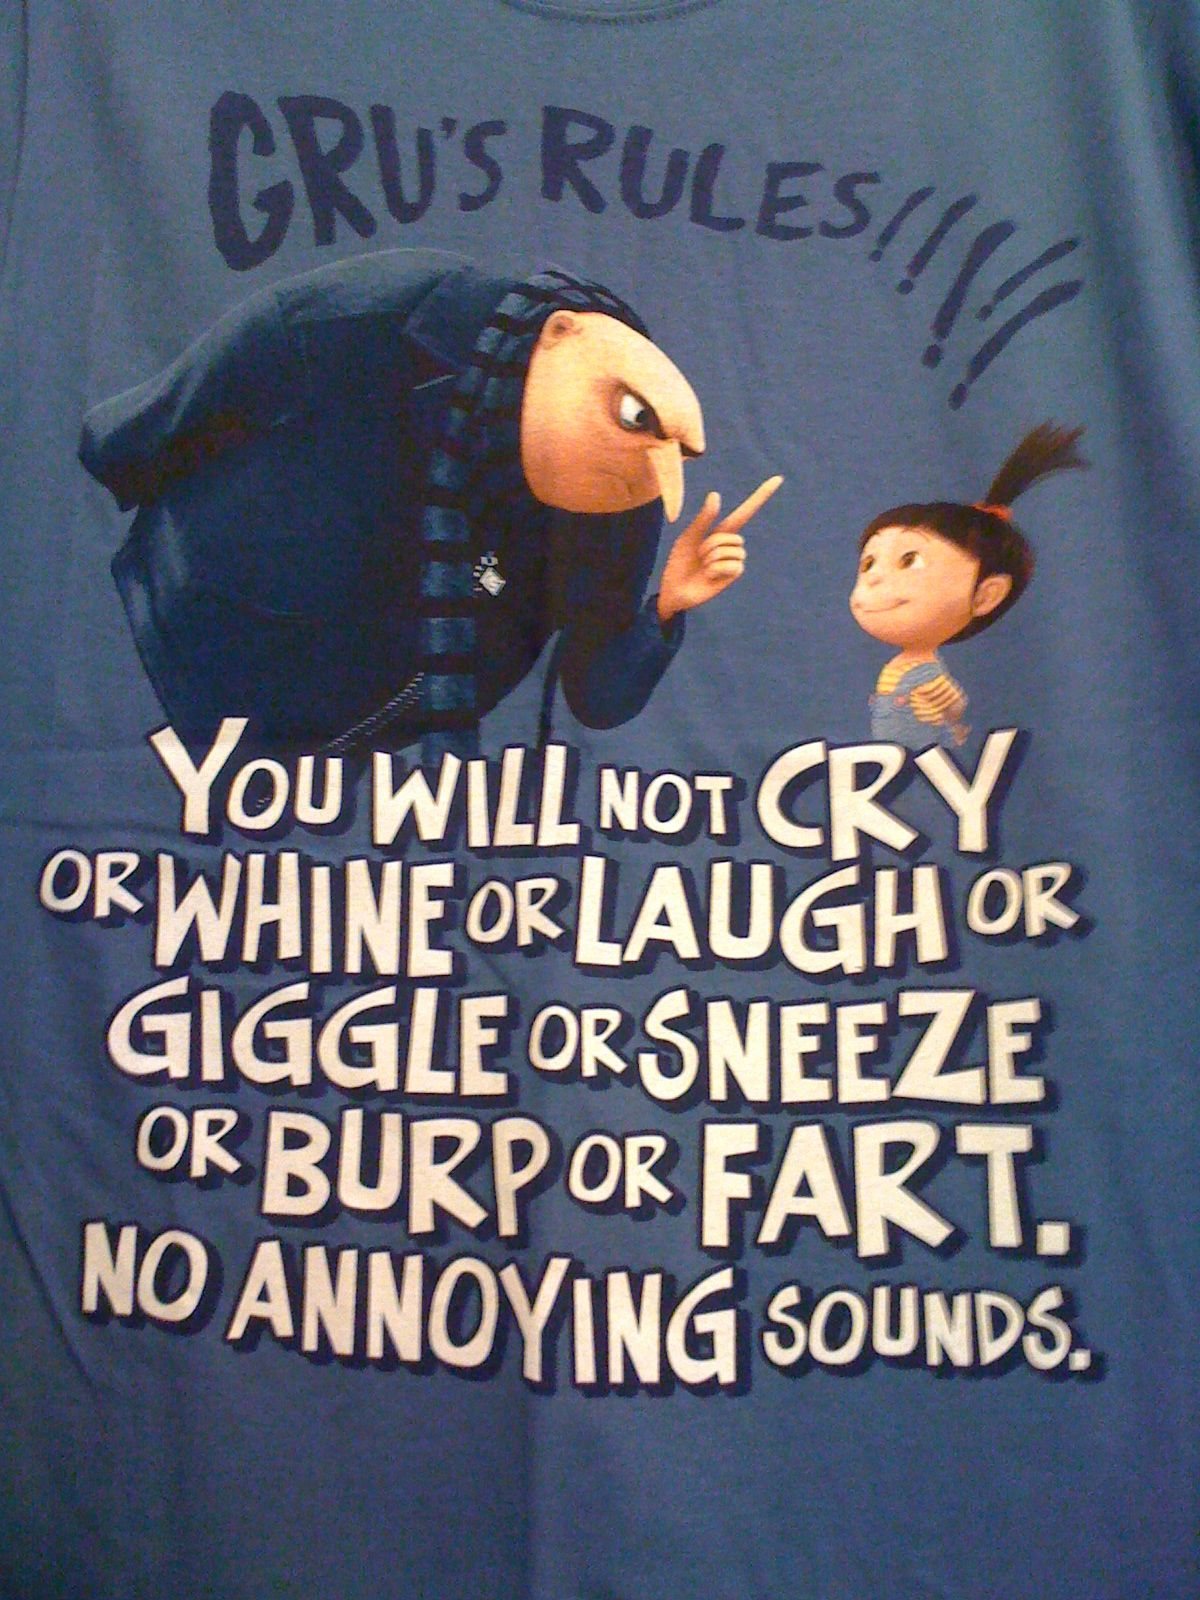 Gru Rules. Despicable Me. Making this into a poster for